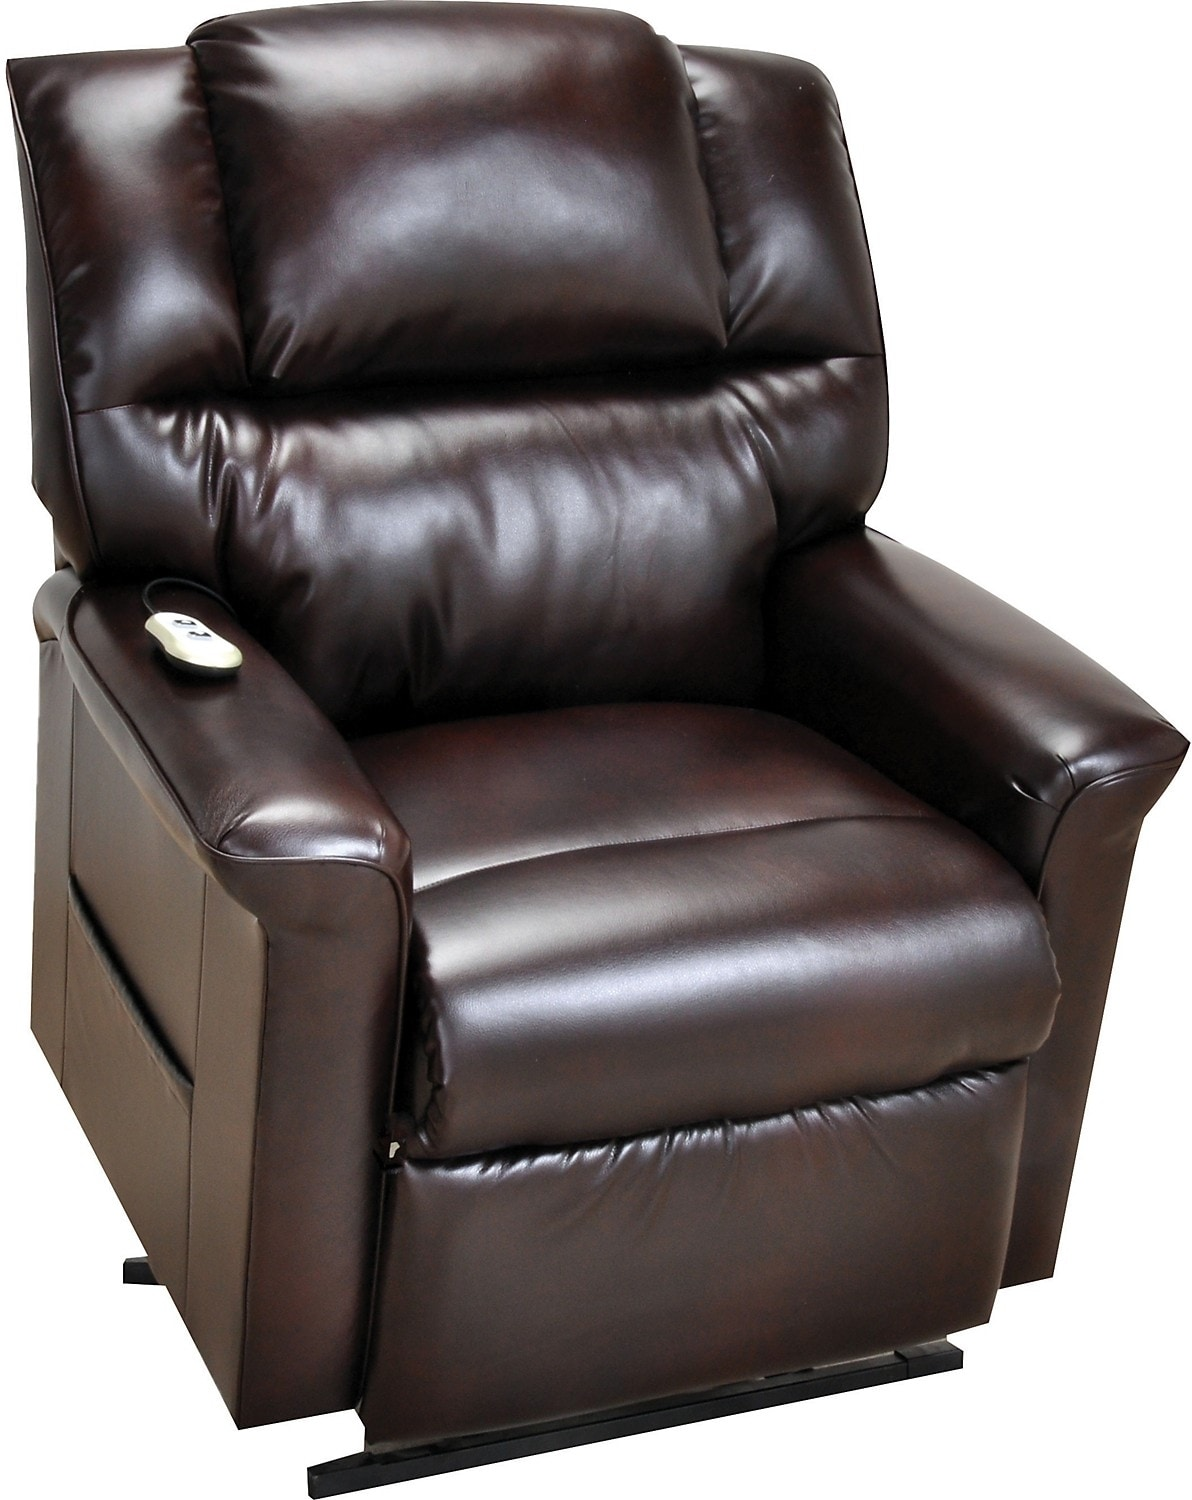 Bonded leather 3 position power lift recliner brown for Chair recliner